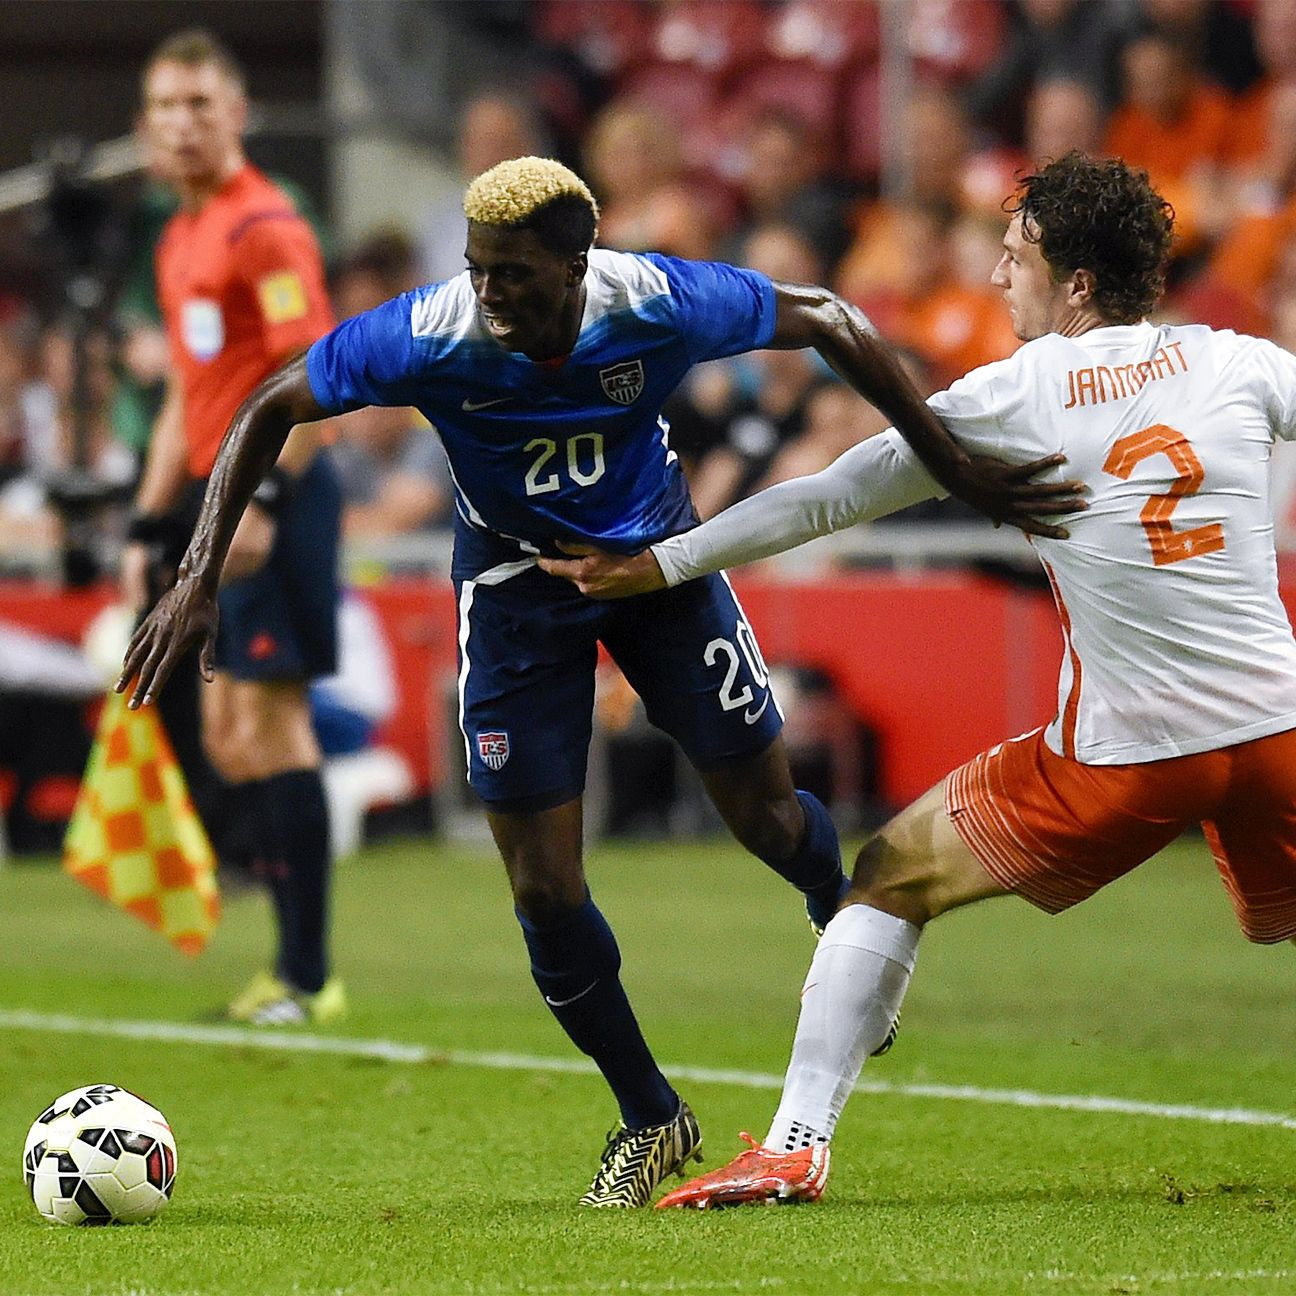 After scoring his first international goal versus the Netherlands, Gyasi Zardes now takes aim at Germany on Wednesday.